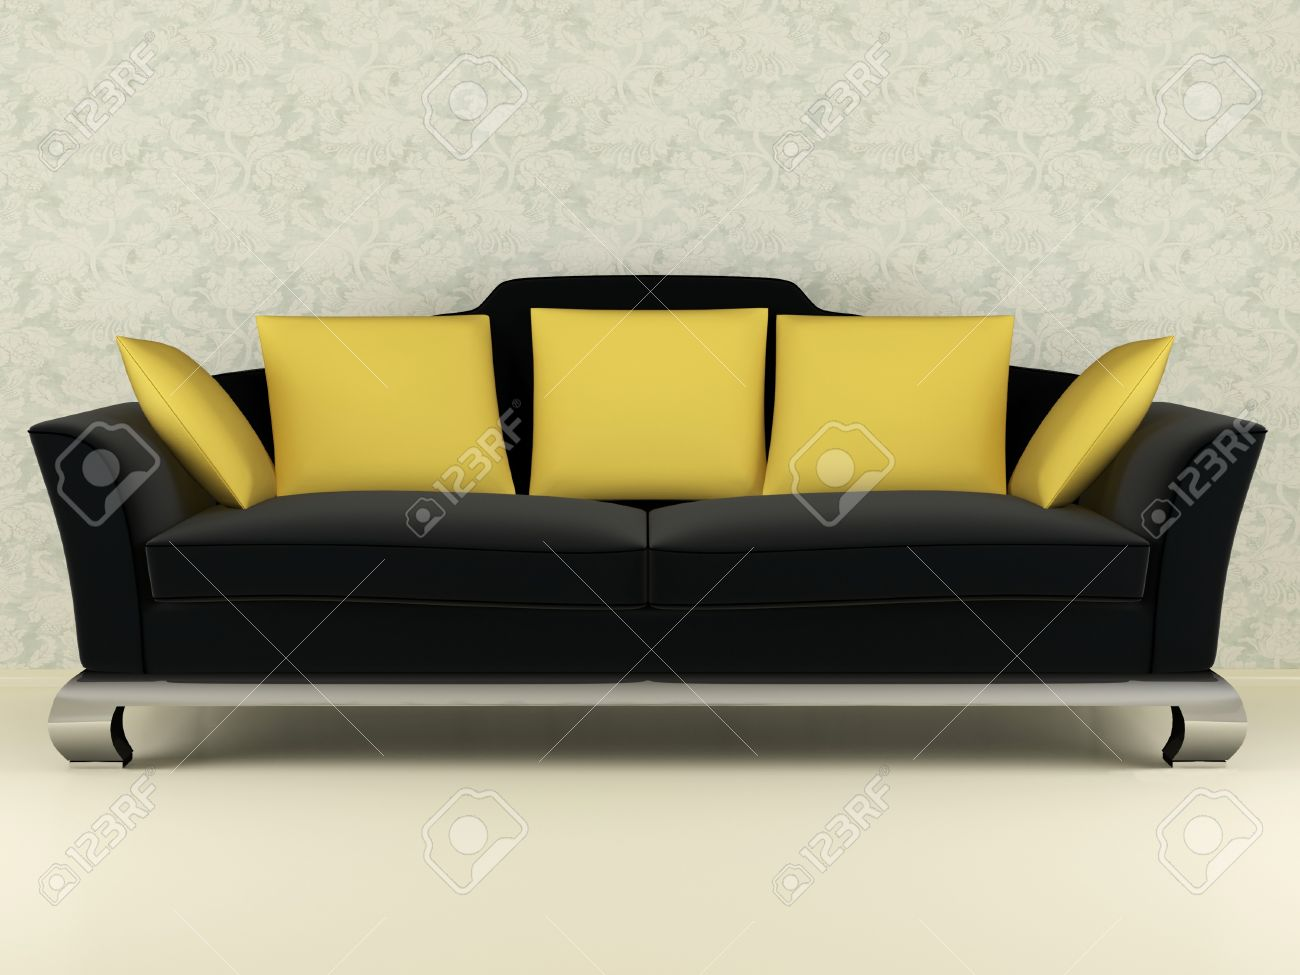 Modern Black Sofa With Yellow Pillows Indoor, 3d Render/illustration ...